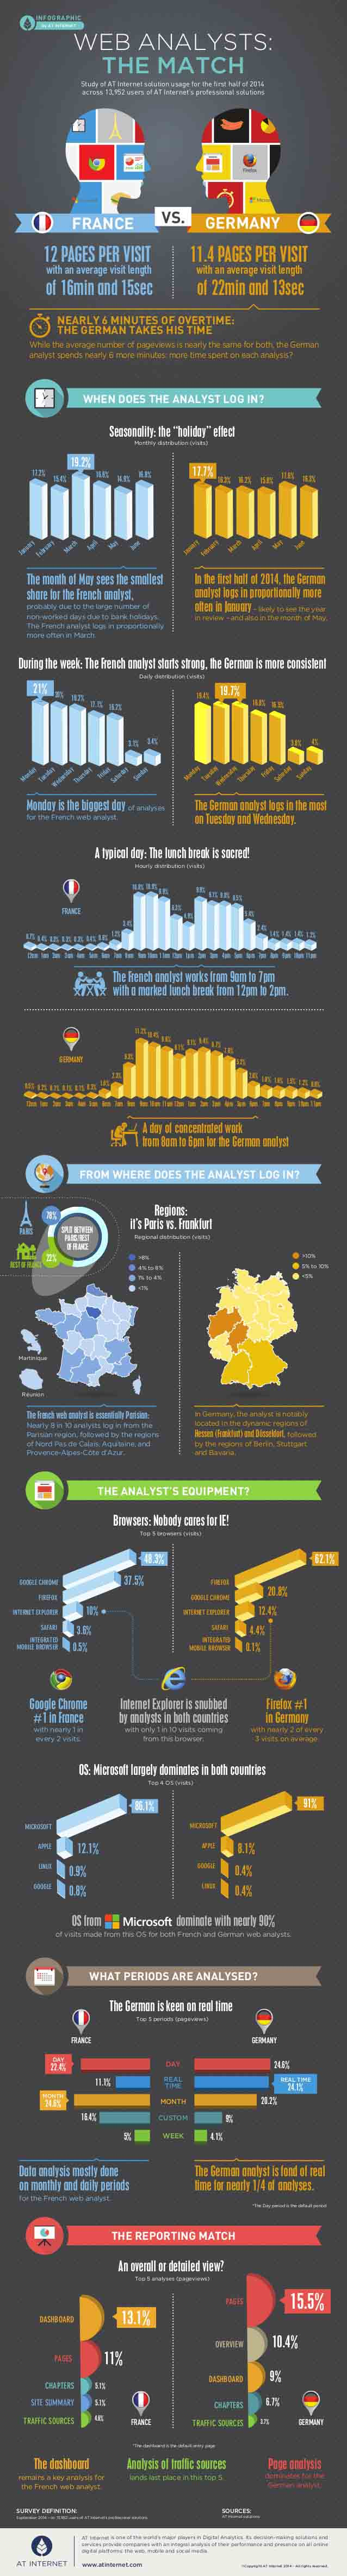 france-vs-germany-web-analysts-the-match-1-638